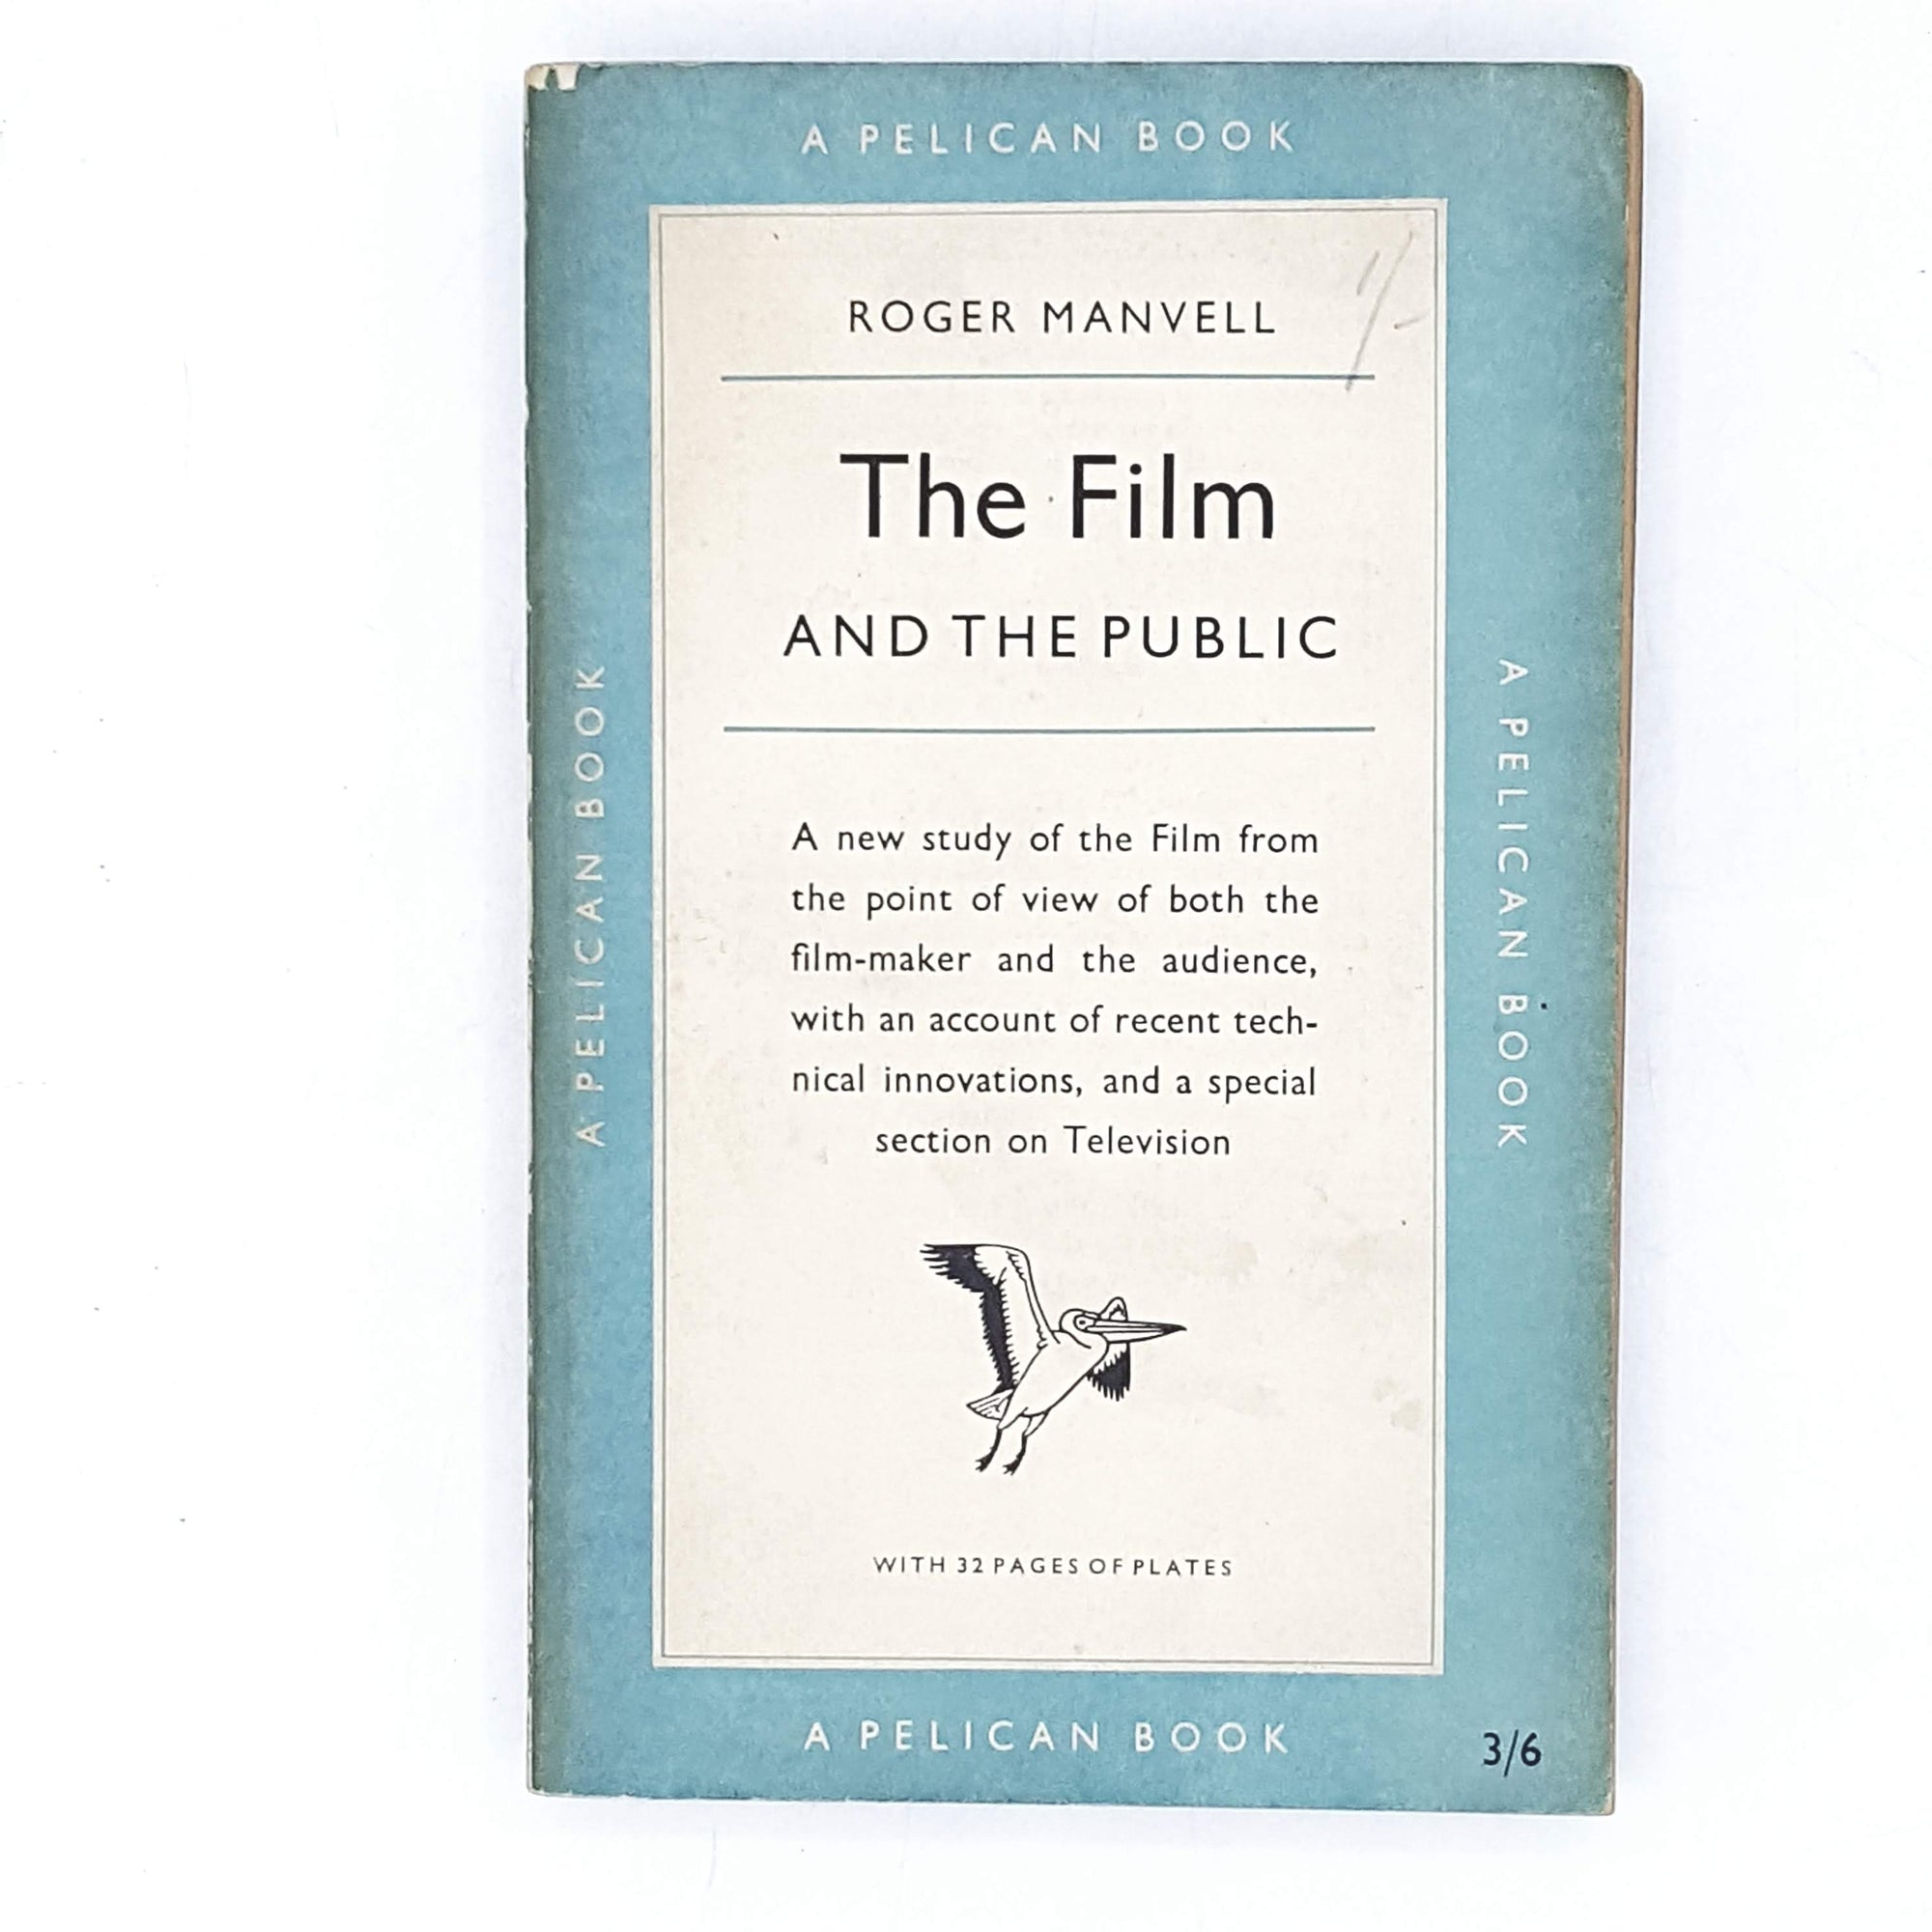 vintage-pelican-the-film-and-the-public-by-roger-manvell-1955-pale-blue-country-house-library